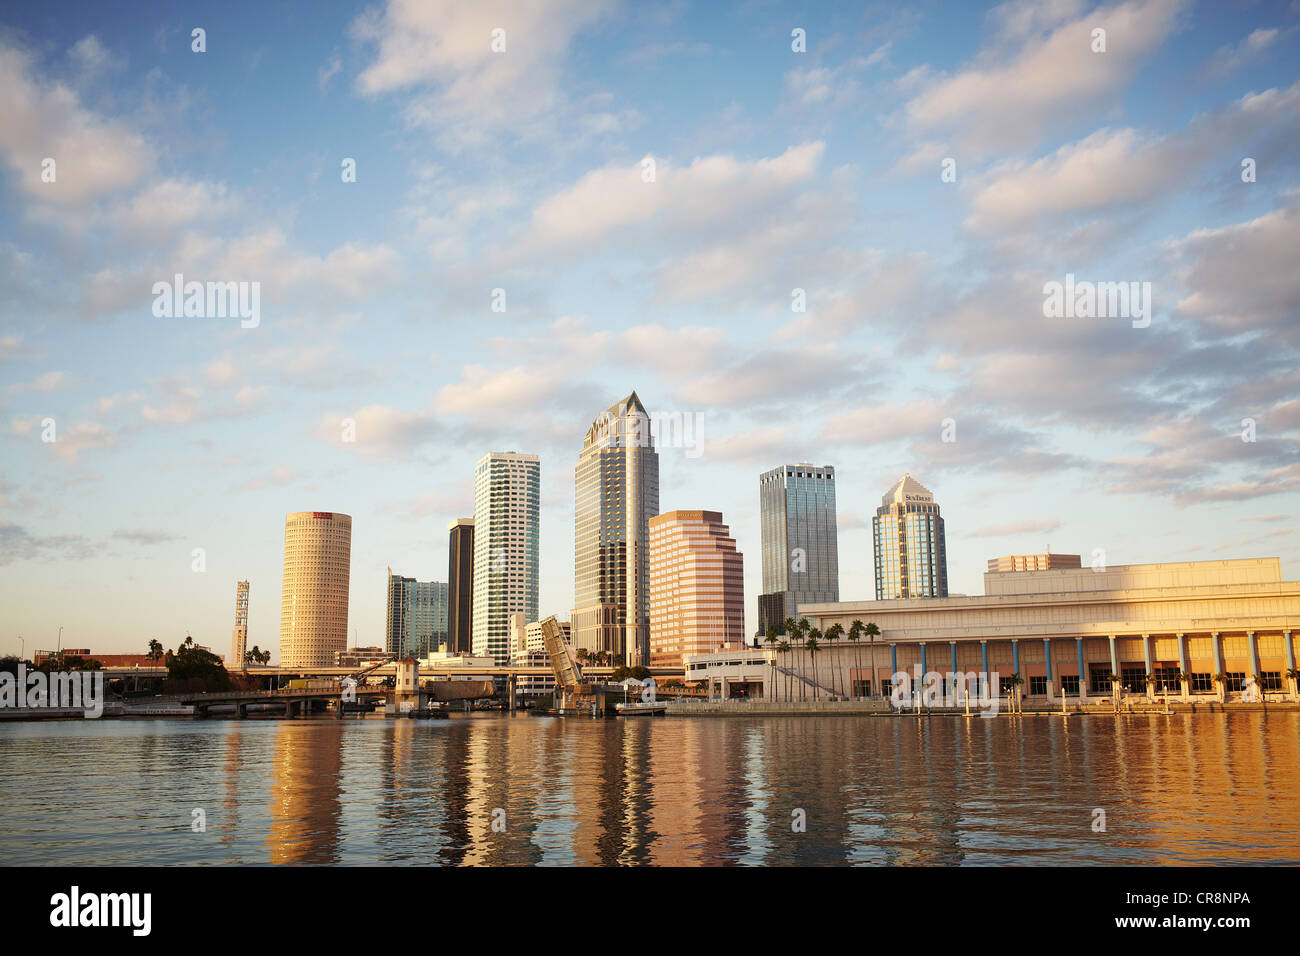 Skyline, Tampa, Florida, USA Photo Stock